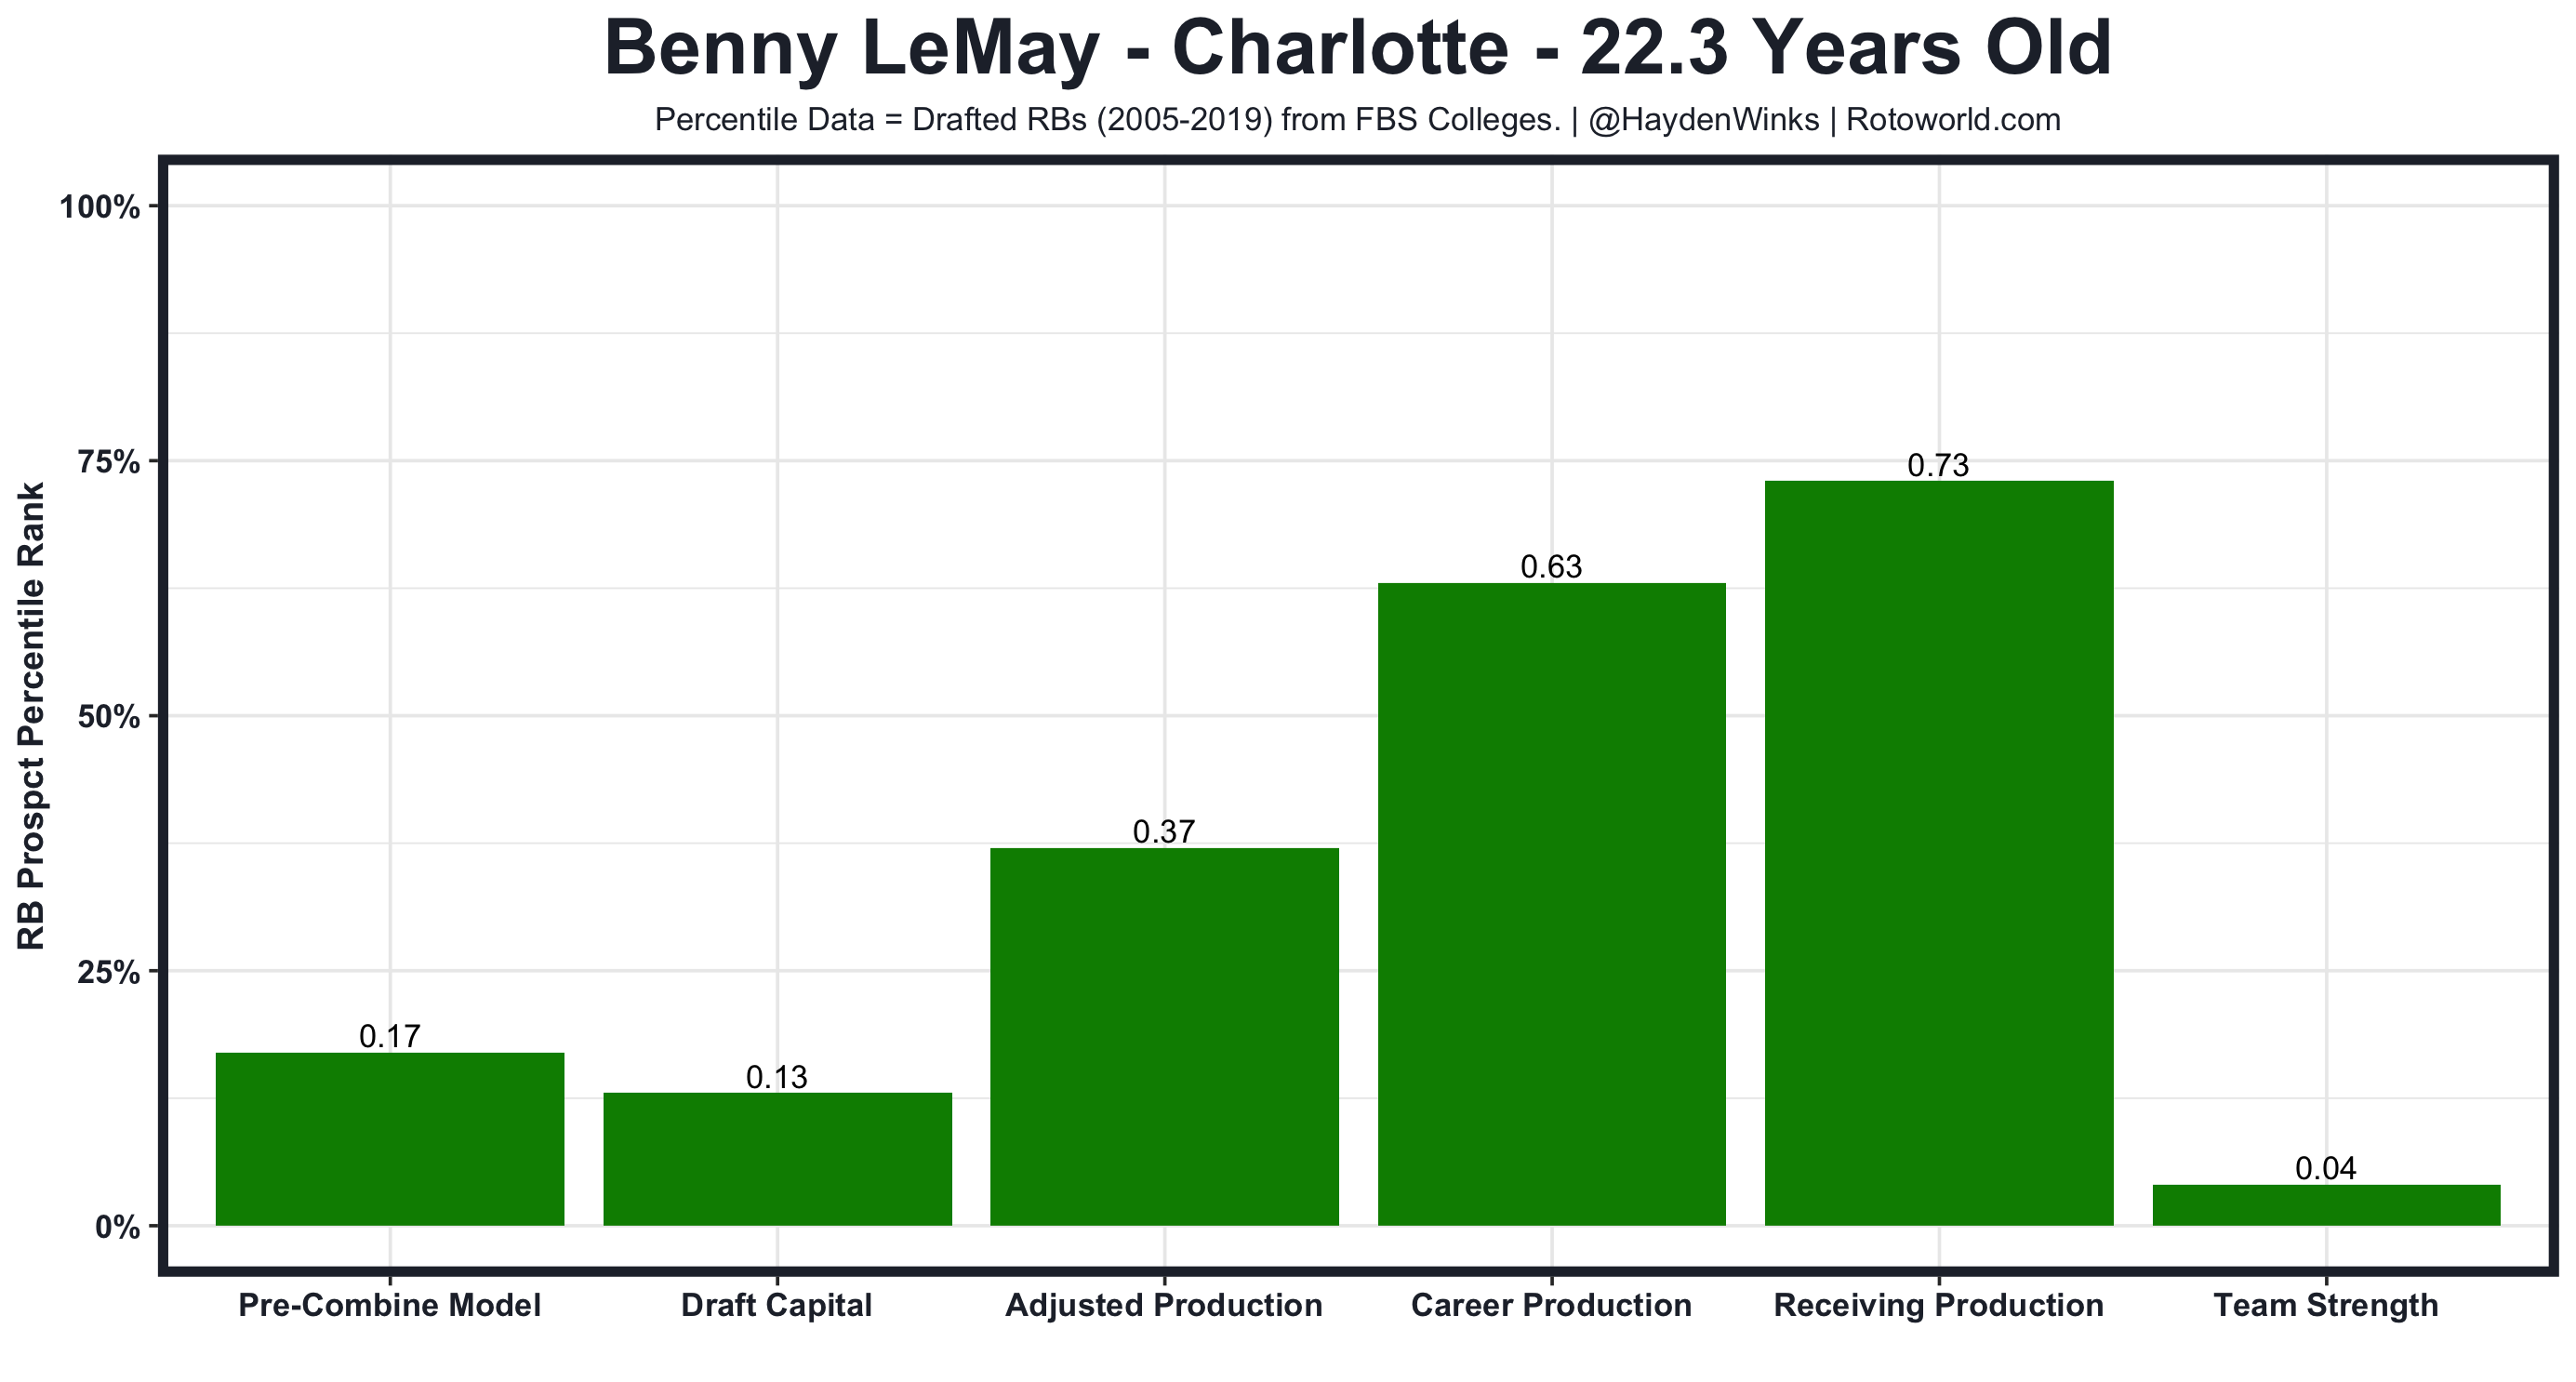 Benny LeMay